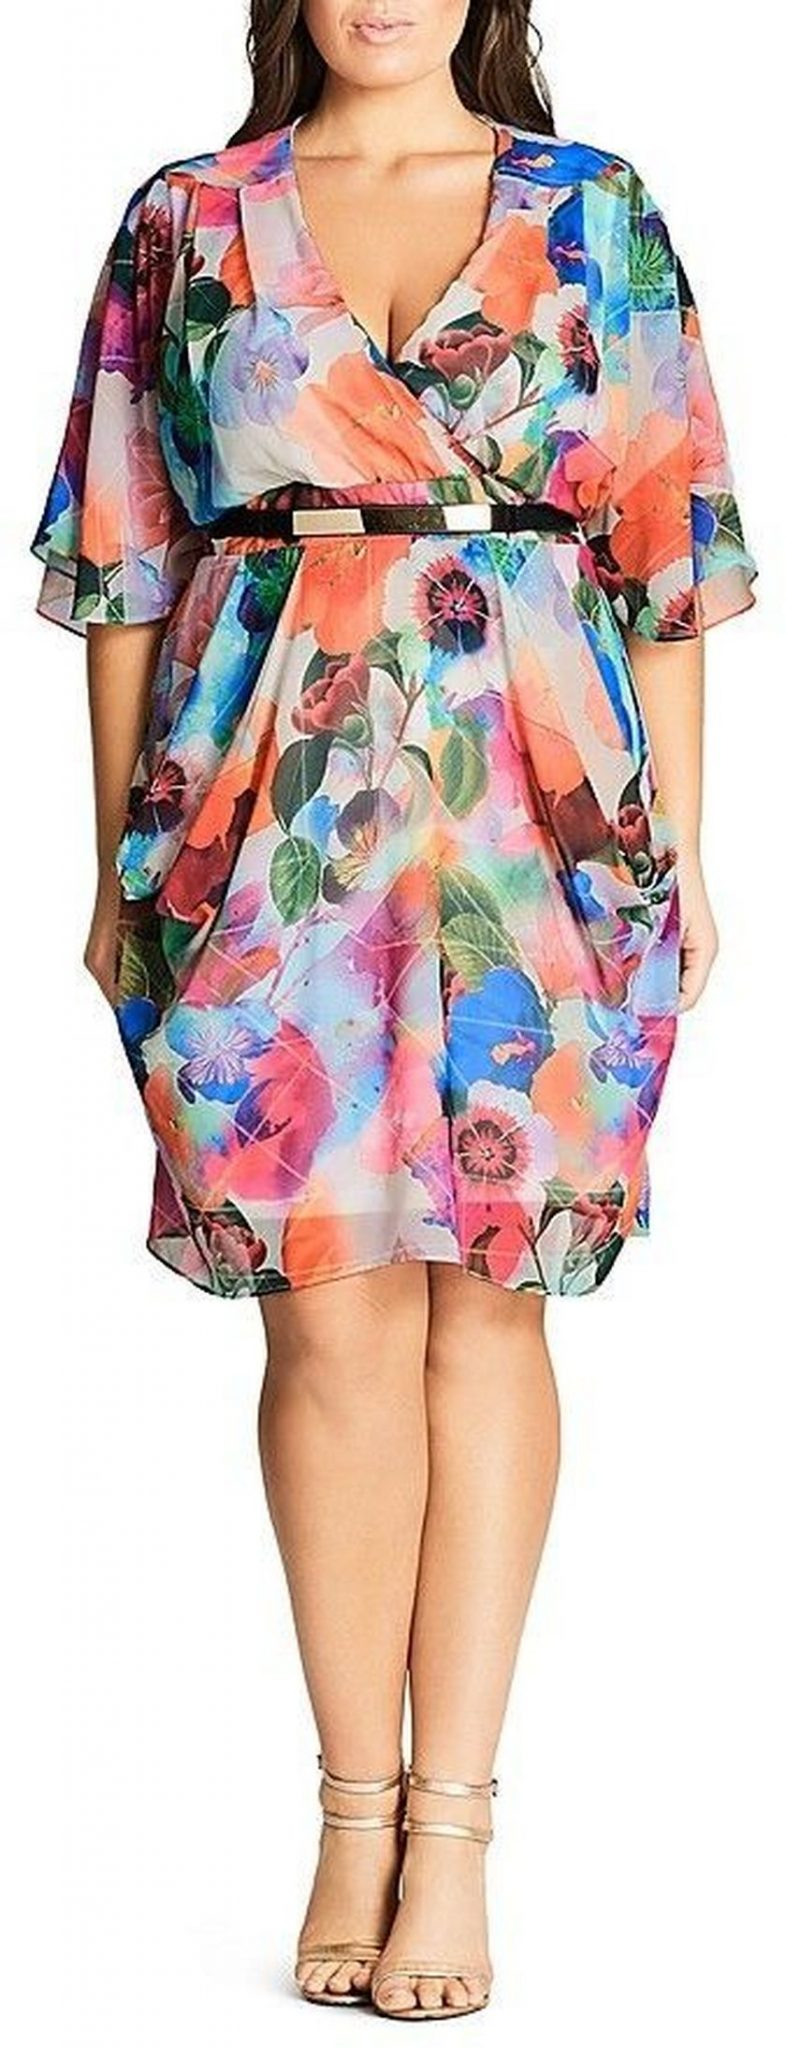 Best summer 2017 outfit for plus size 40